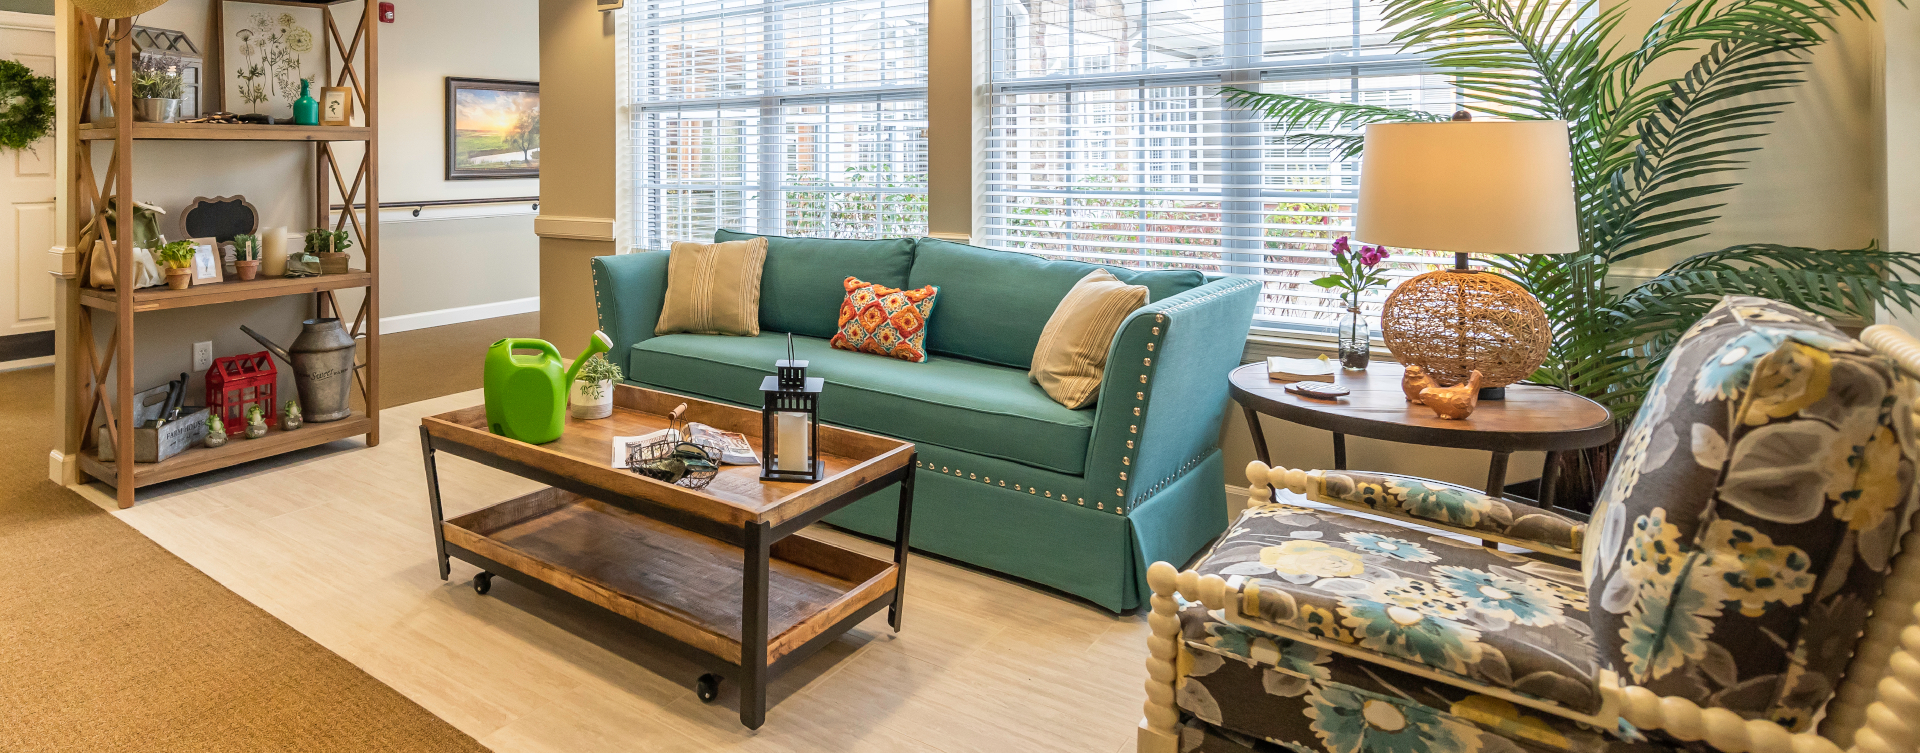 Curl up with a good book in the sunroom at Bickford of Shelby Township